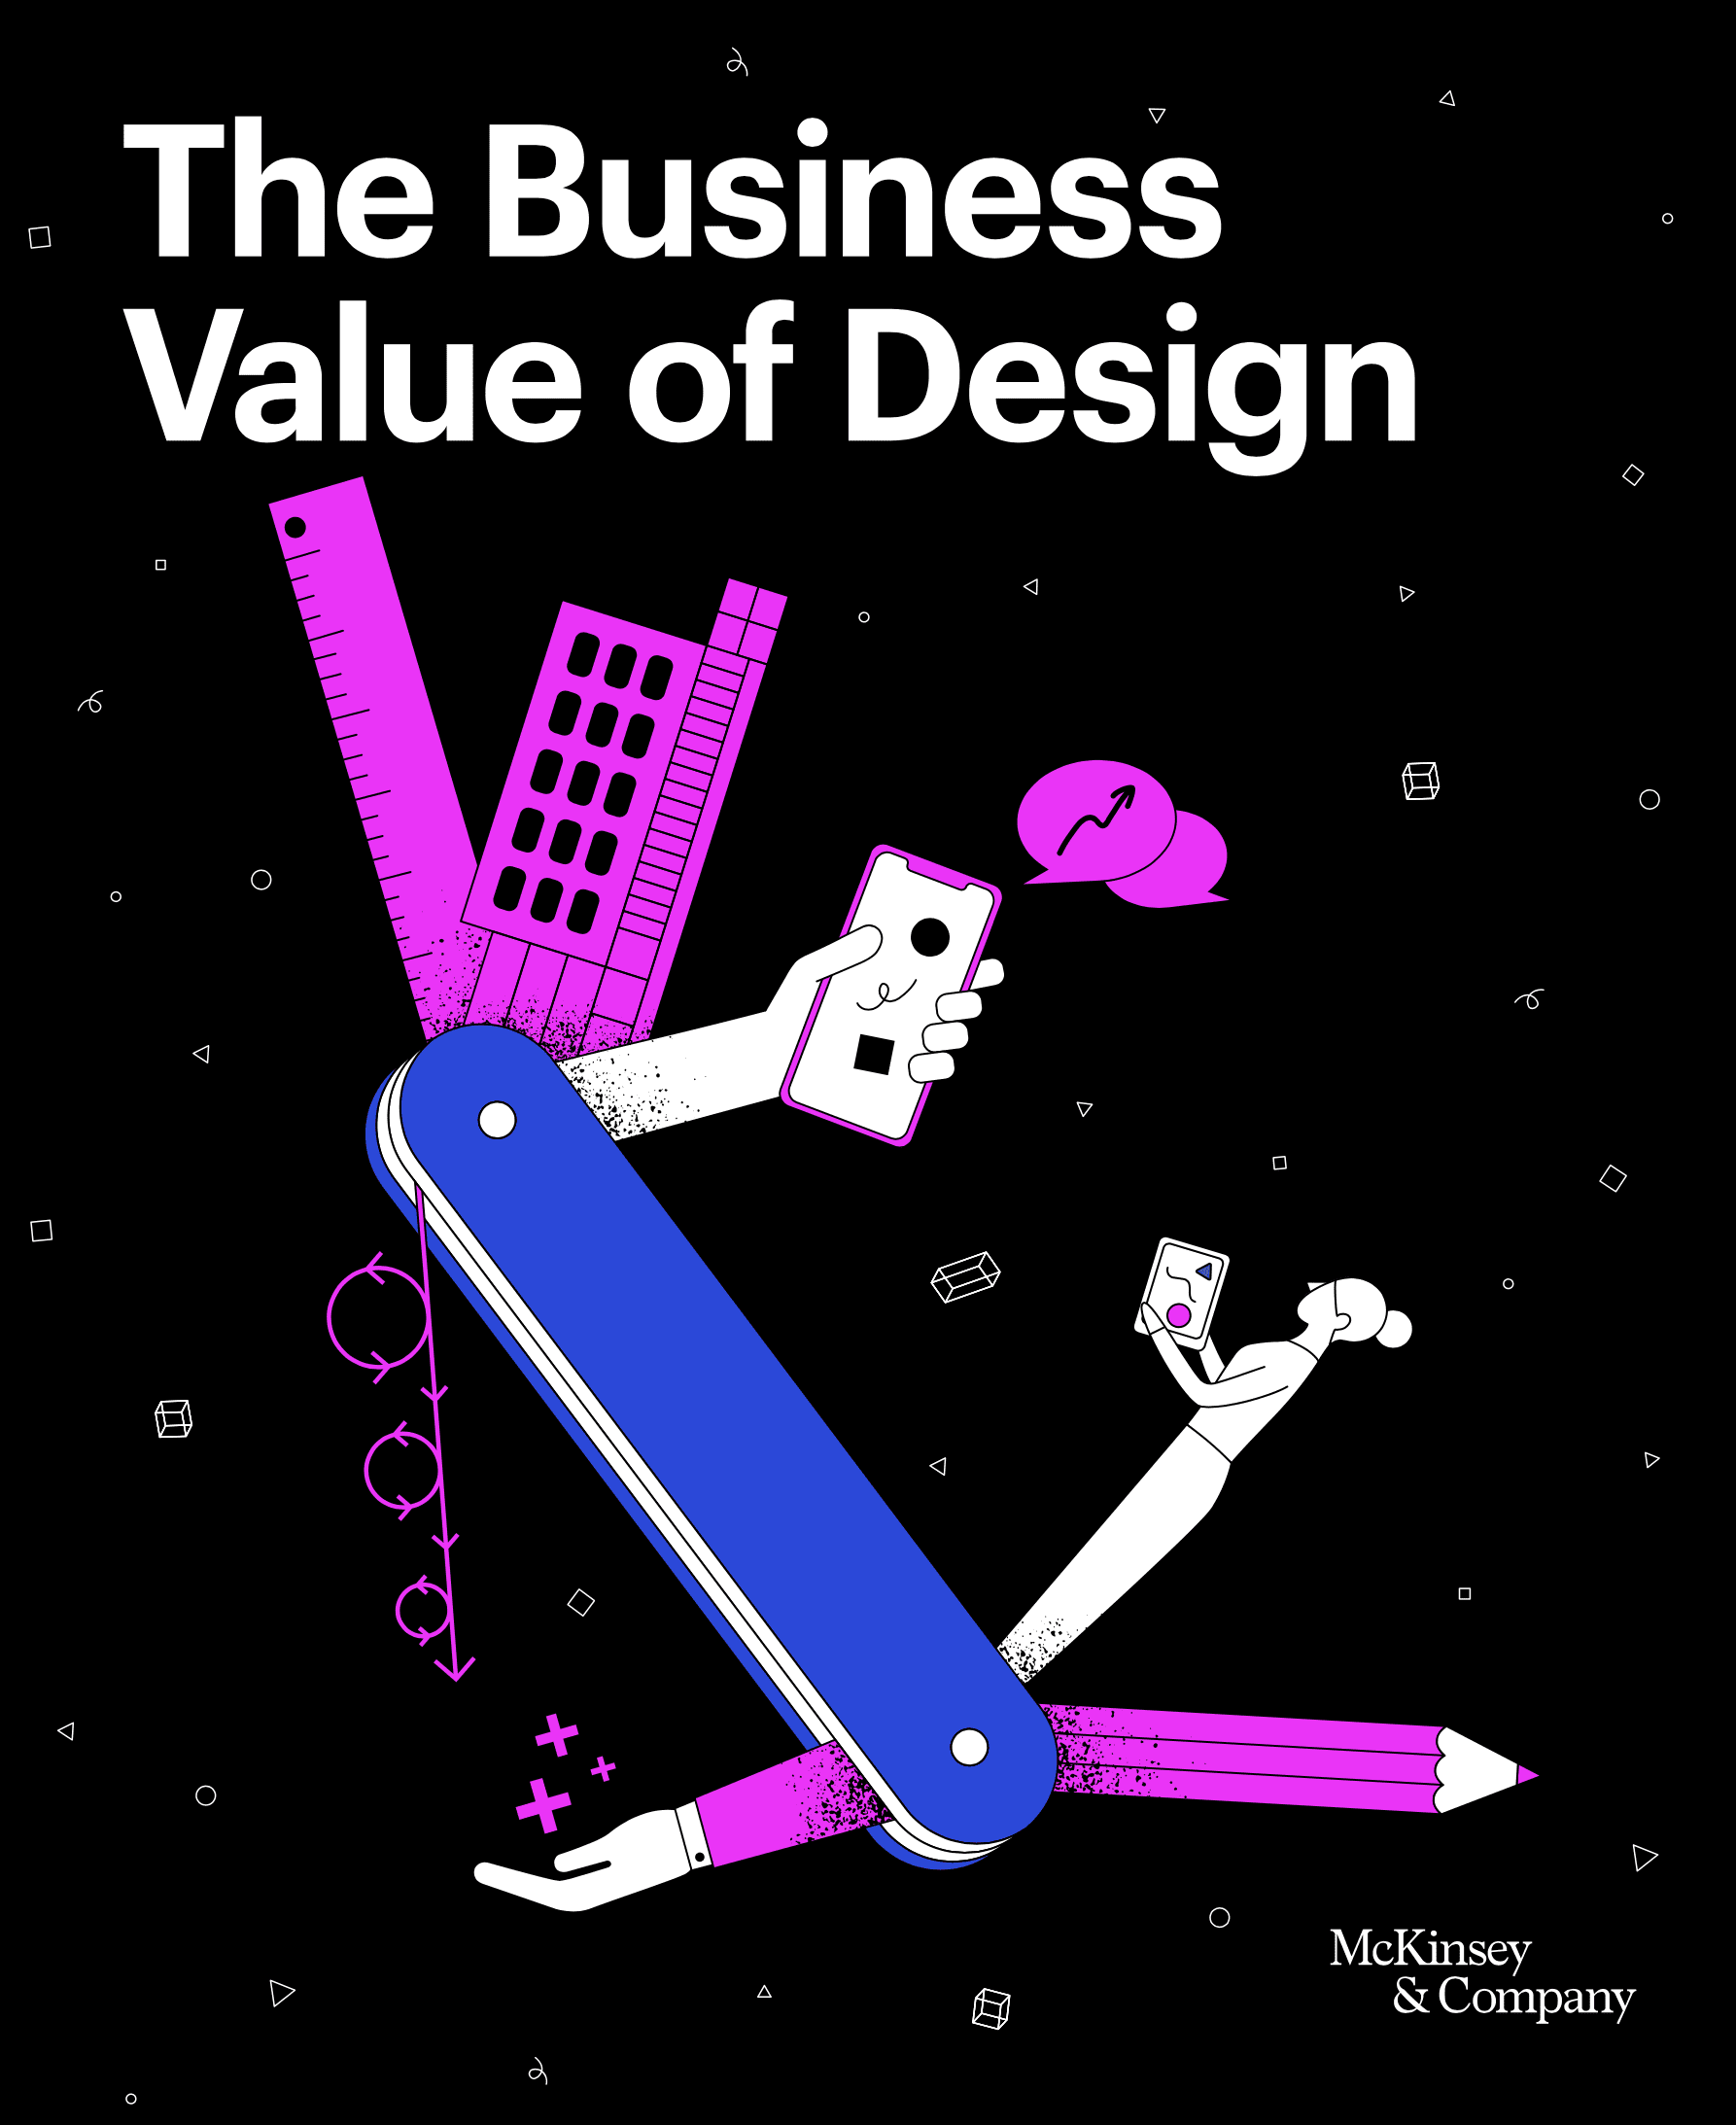 The Business Value of Design McKinsey